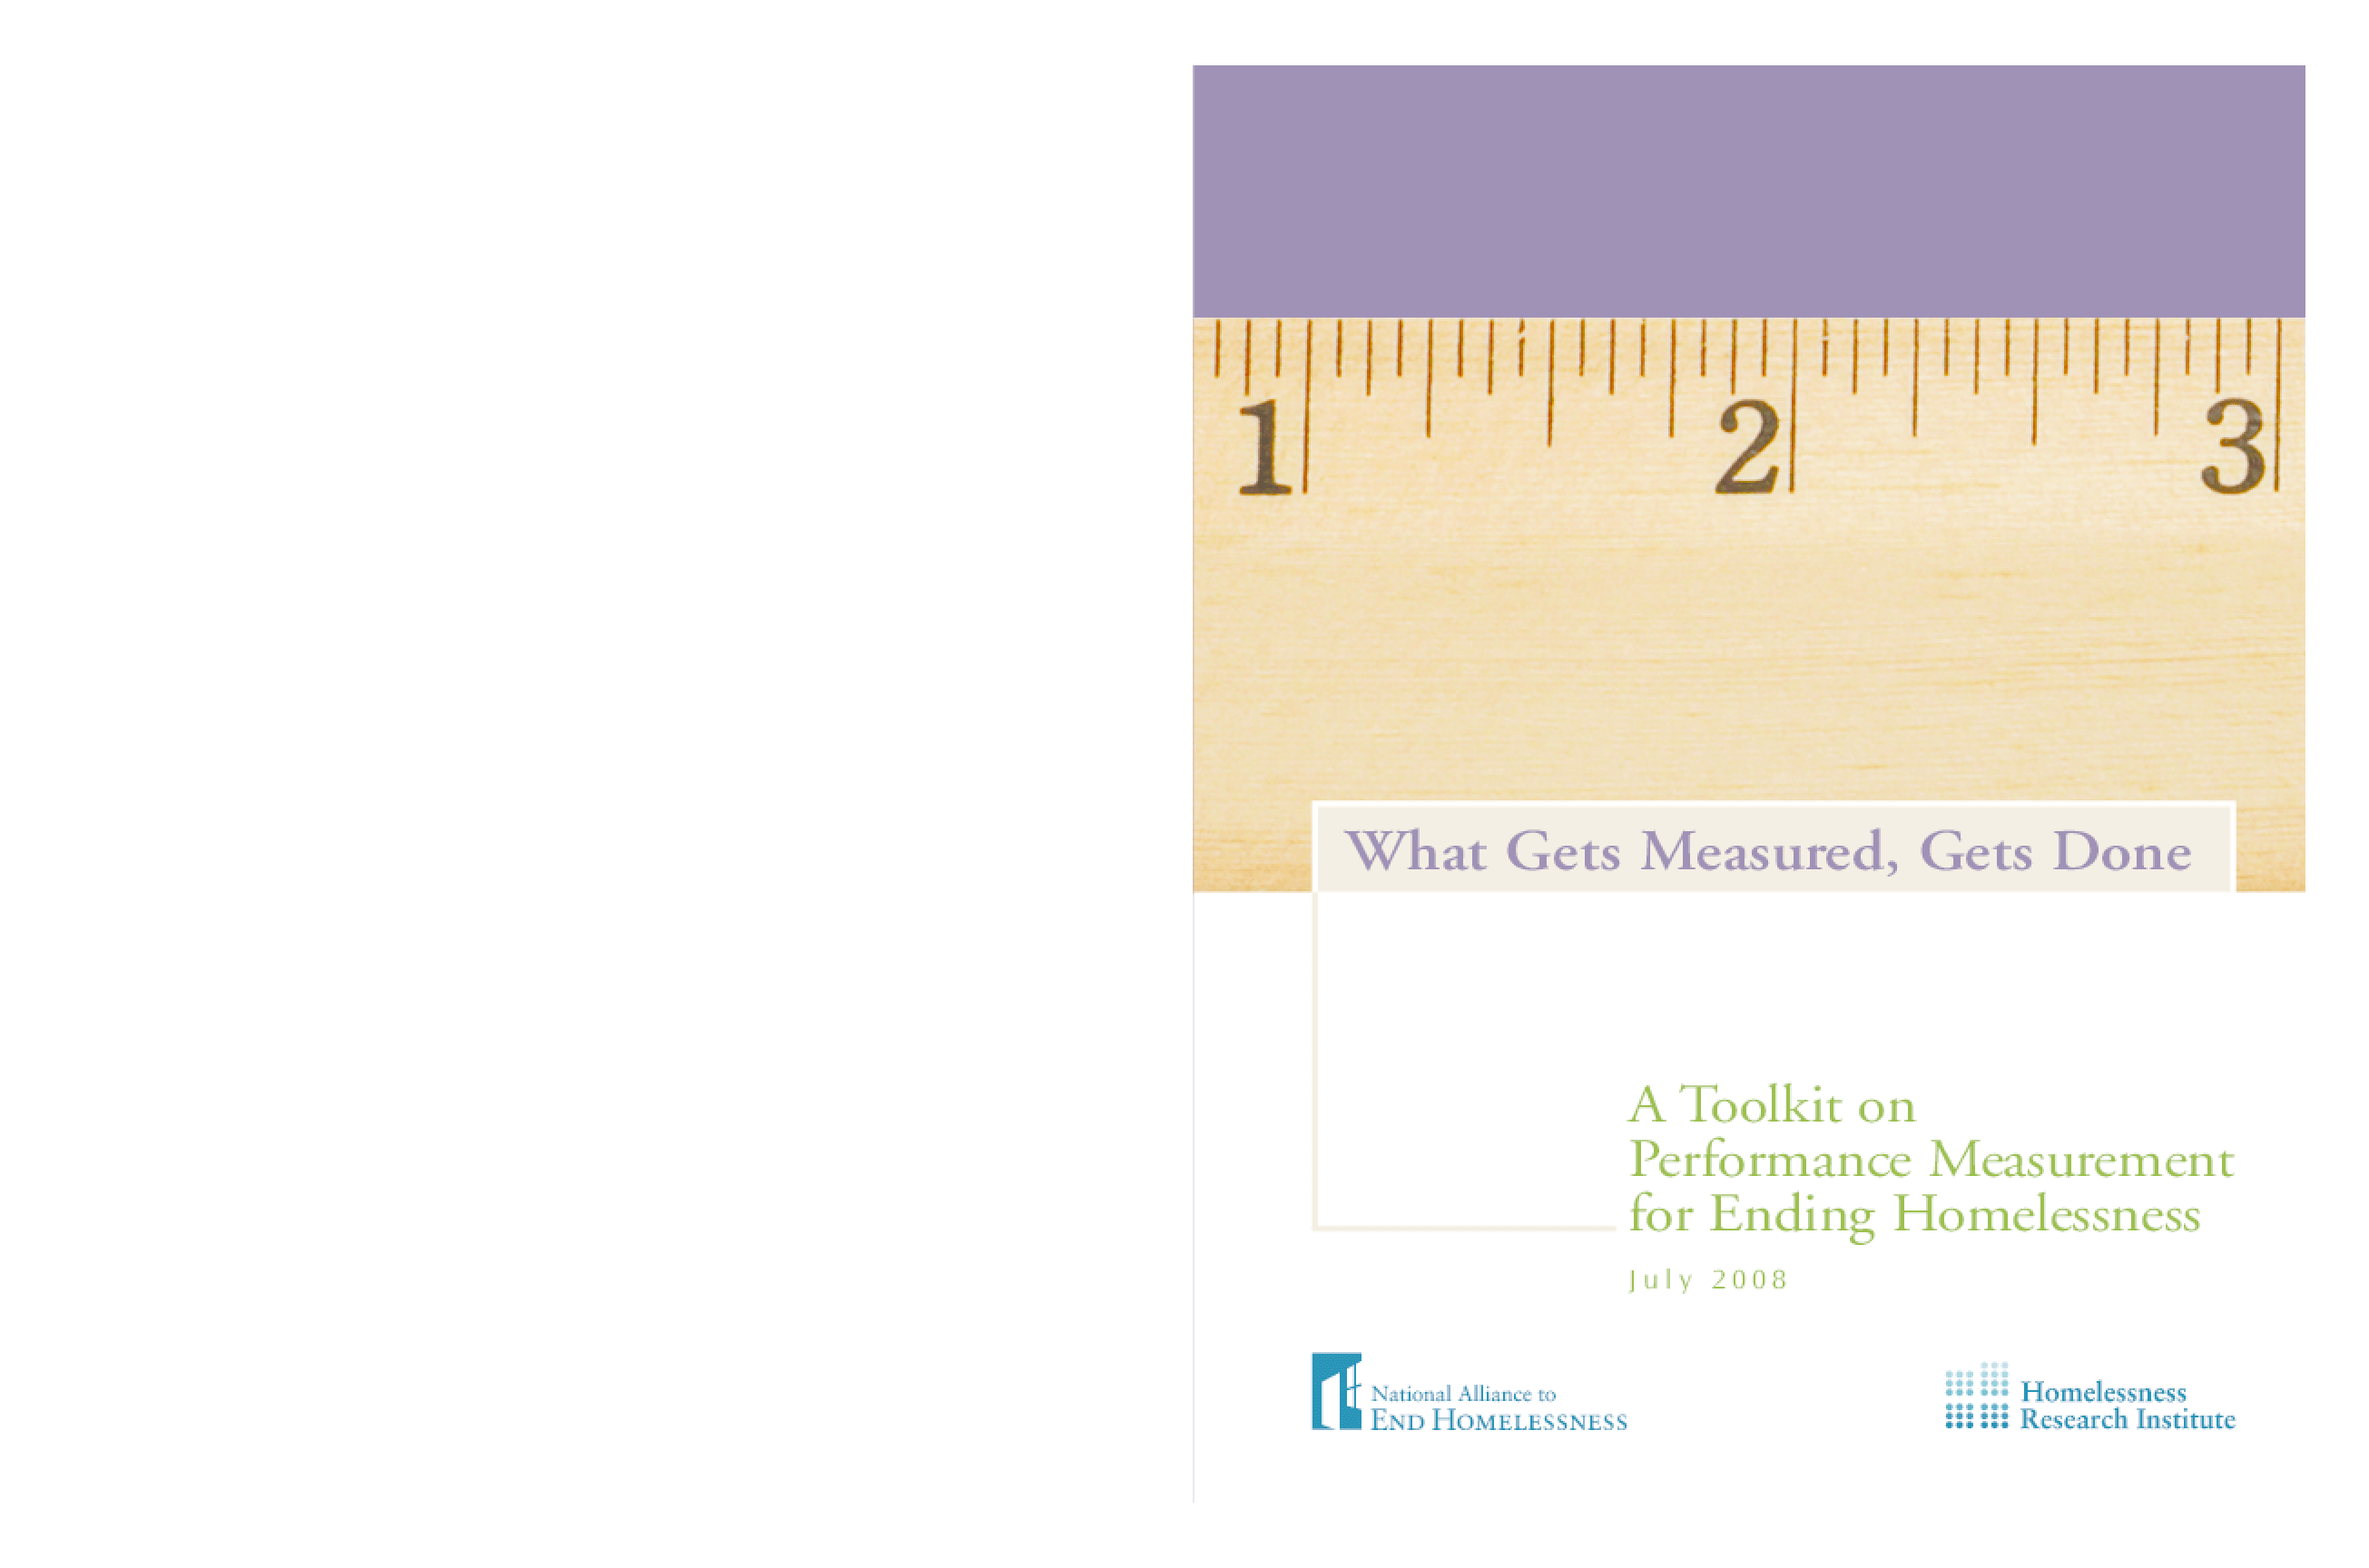 What Gets Measured, Gets Done: A Toolkit on Performance Measurement for Ending Homelessness